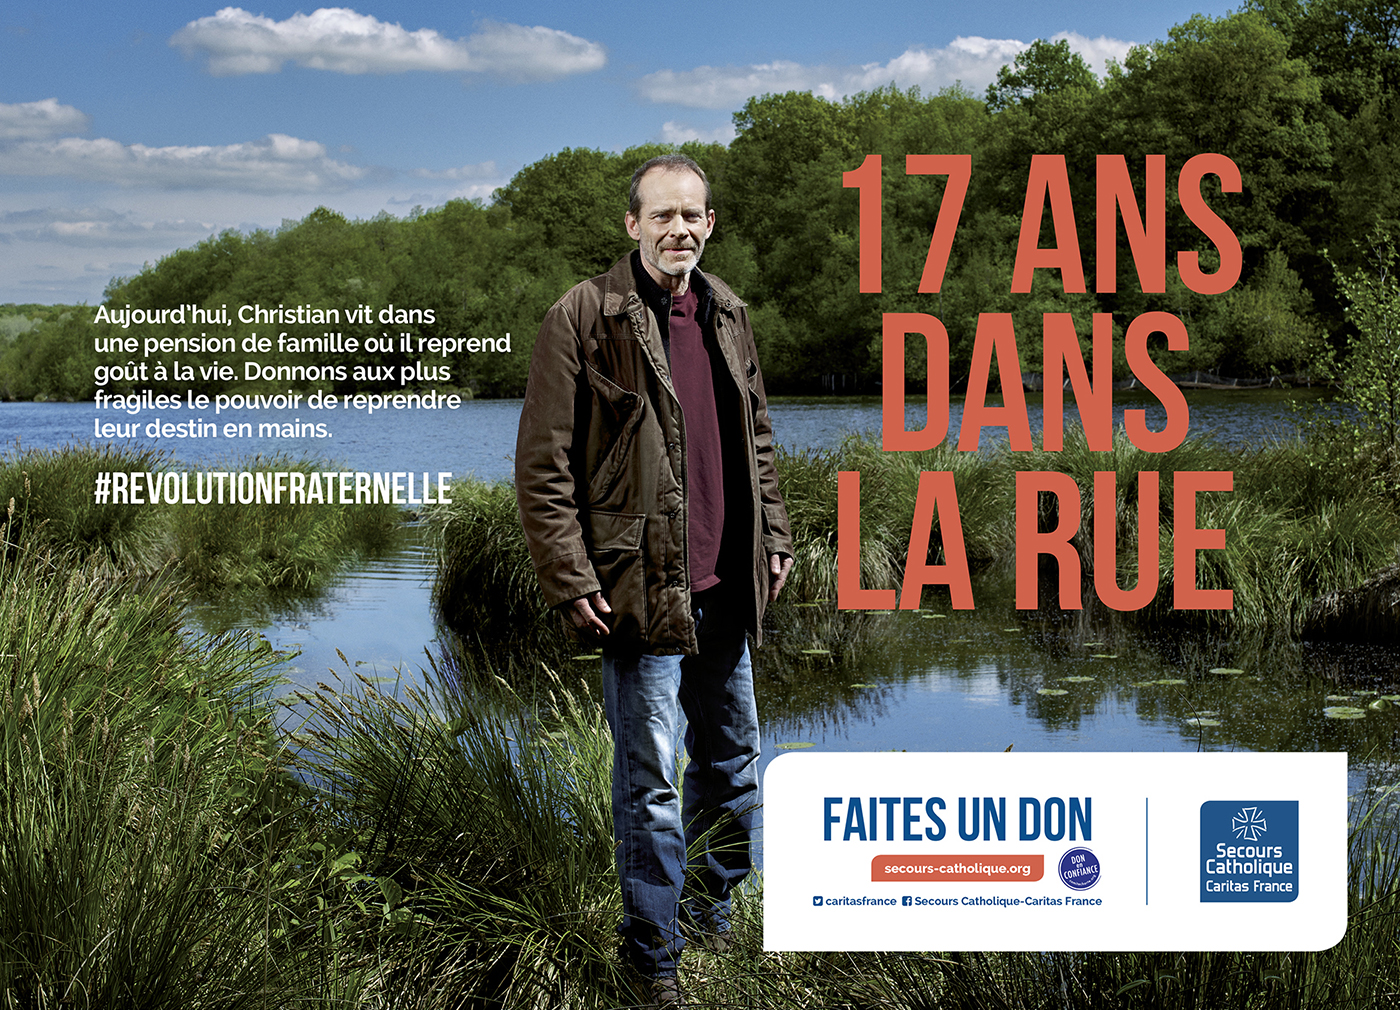 Thibault Stipal - Photographe - CAMPAGNE NATIONALE SECOURS CATHOLIQUE  - 1